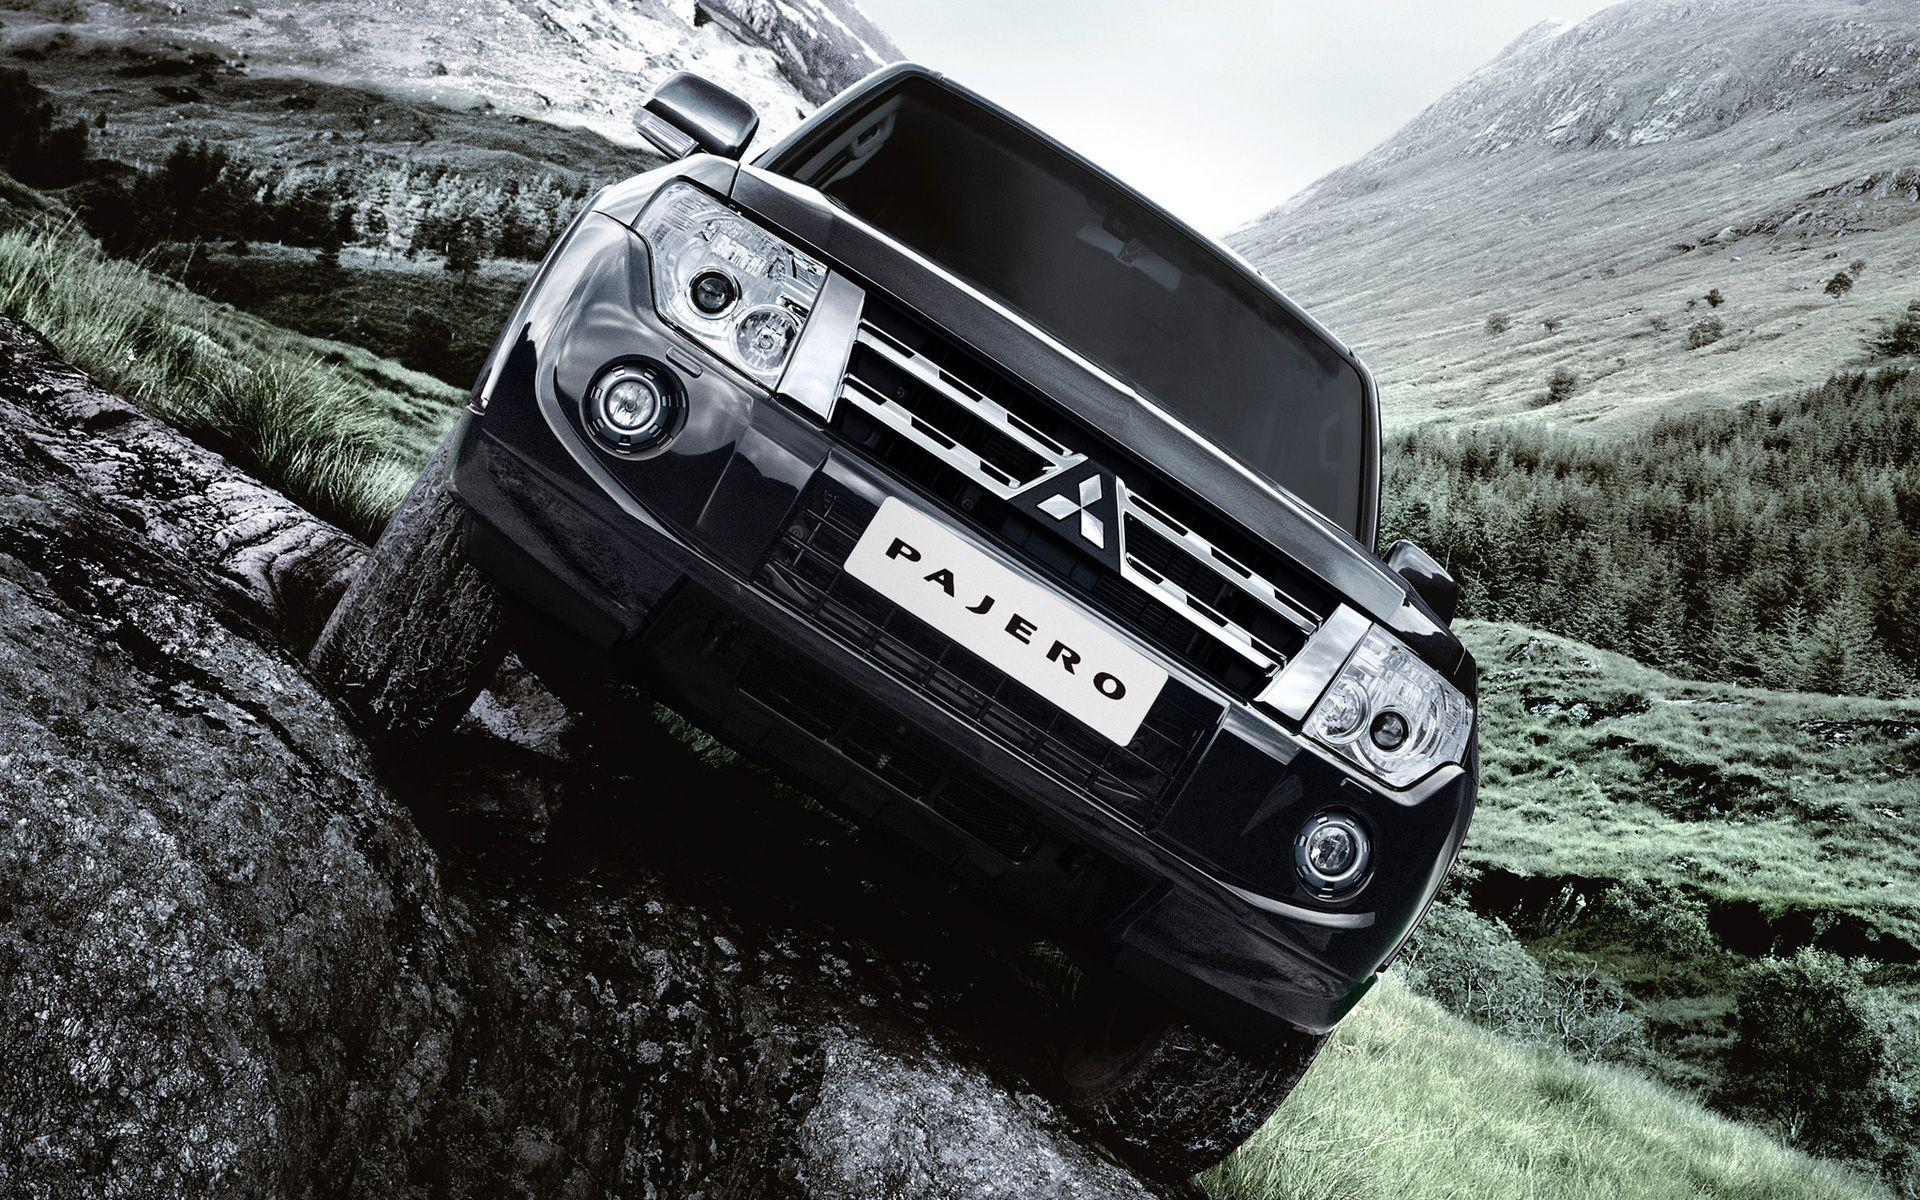 Merveilleux Cars: Mitsubishi Pajero, Desktop Wallpaper Nr. 61812 By Antigesha